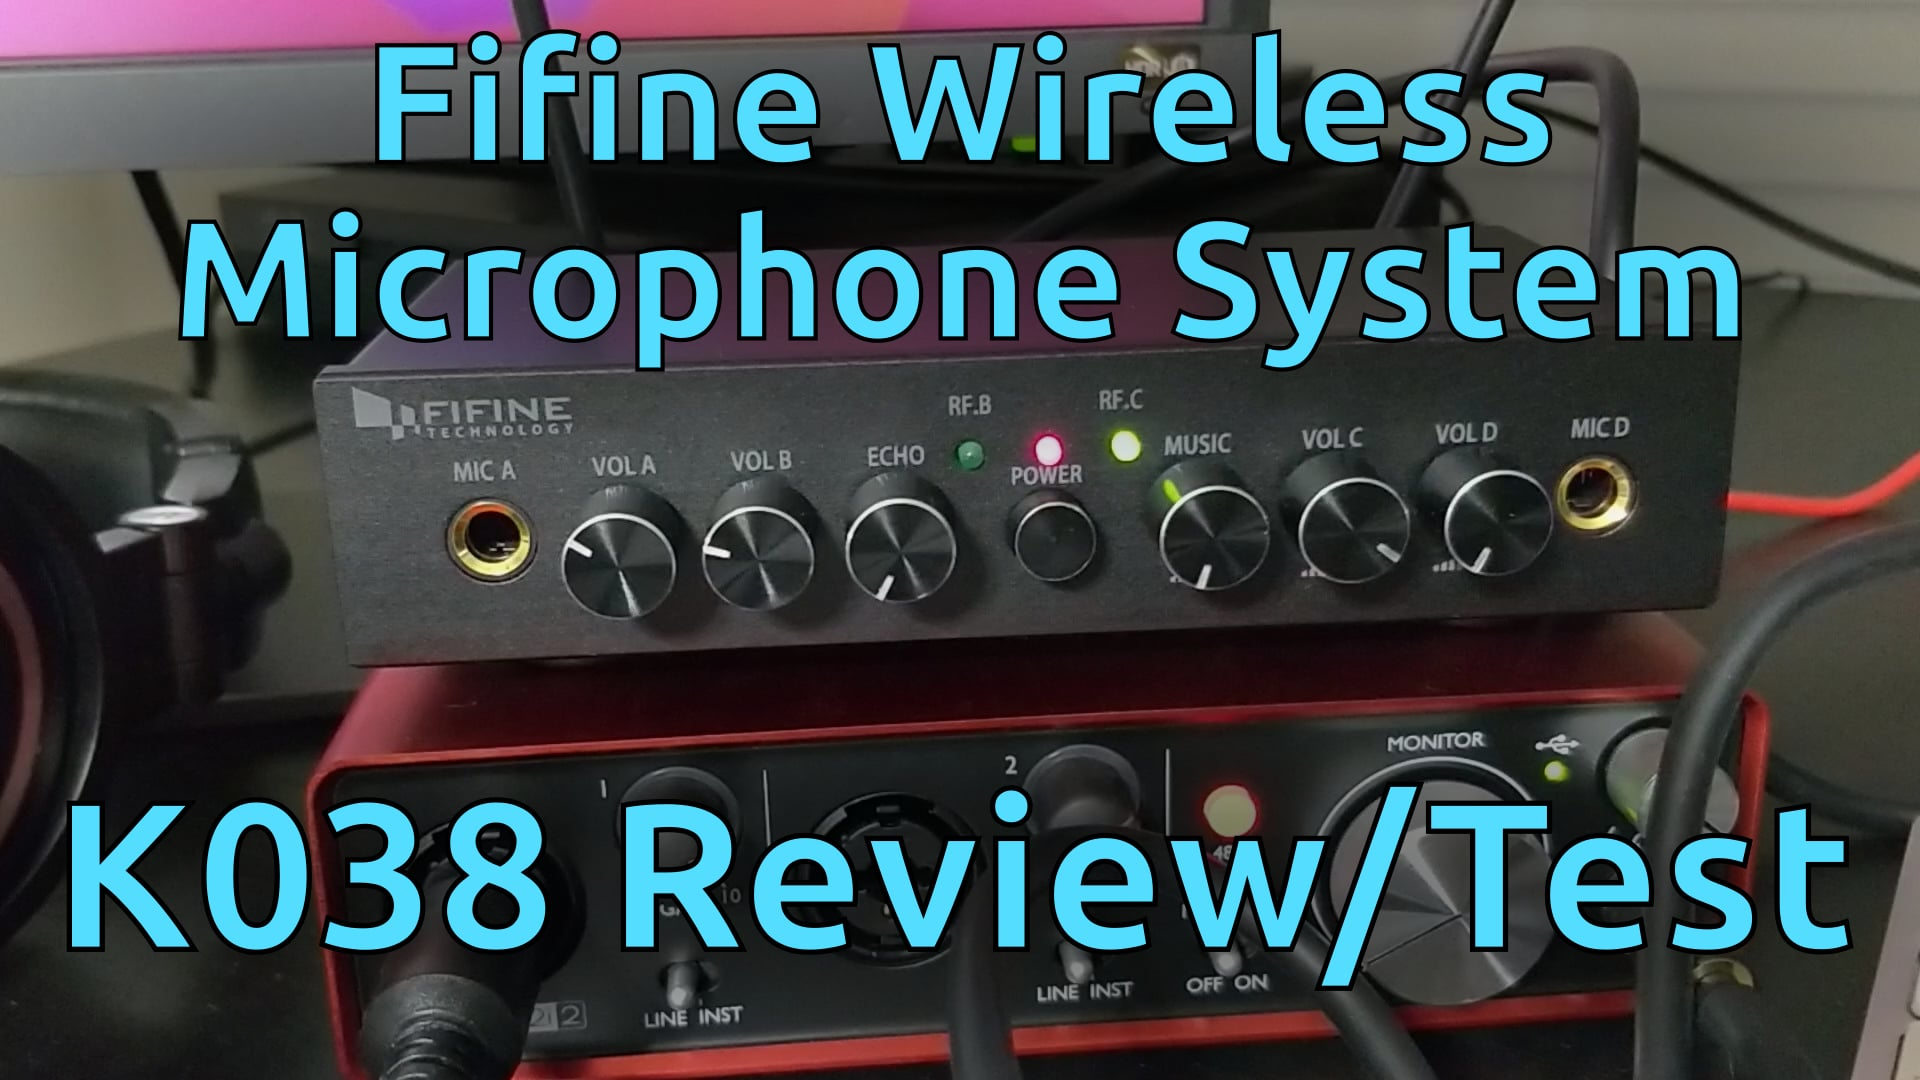 Fifine Wireless Microphone System K038 Review/Test